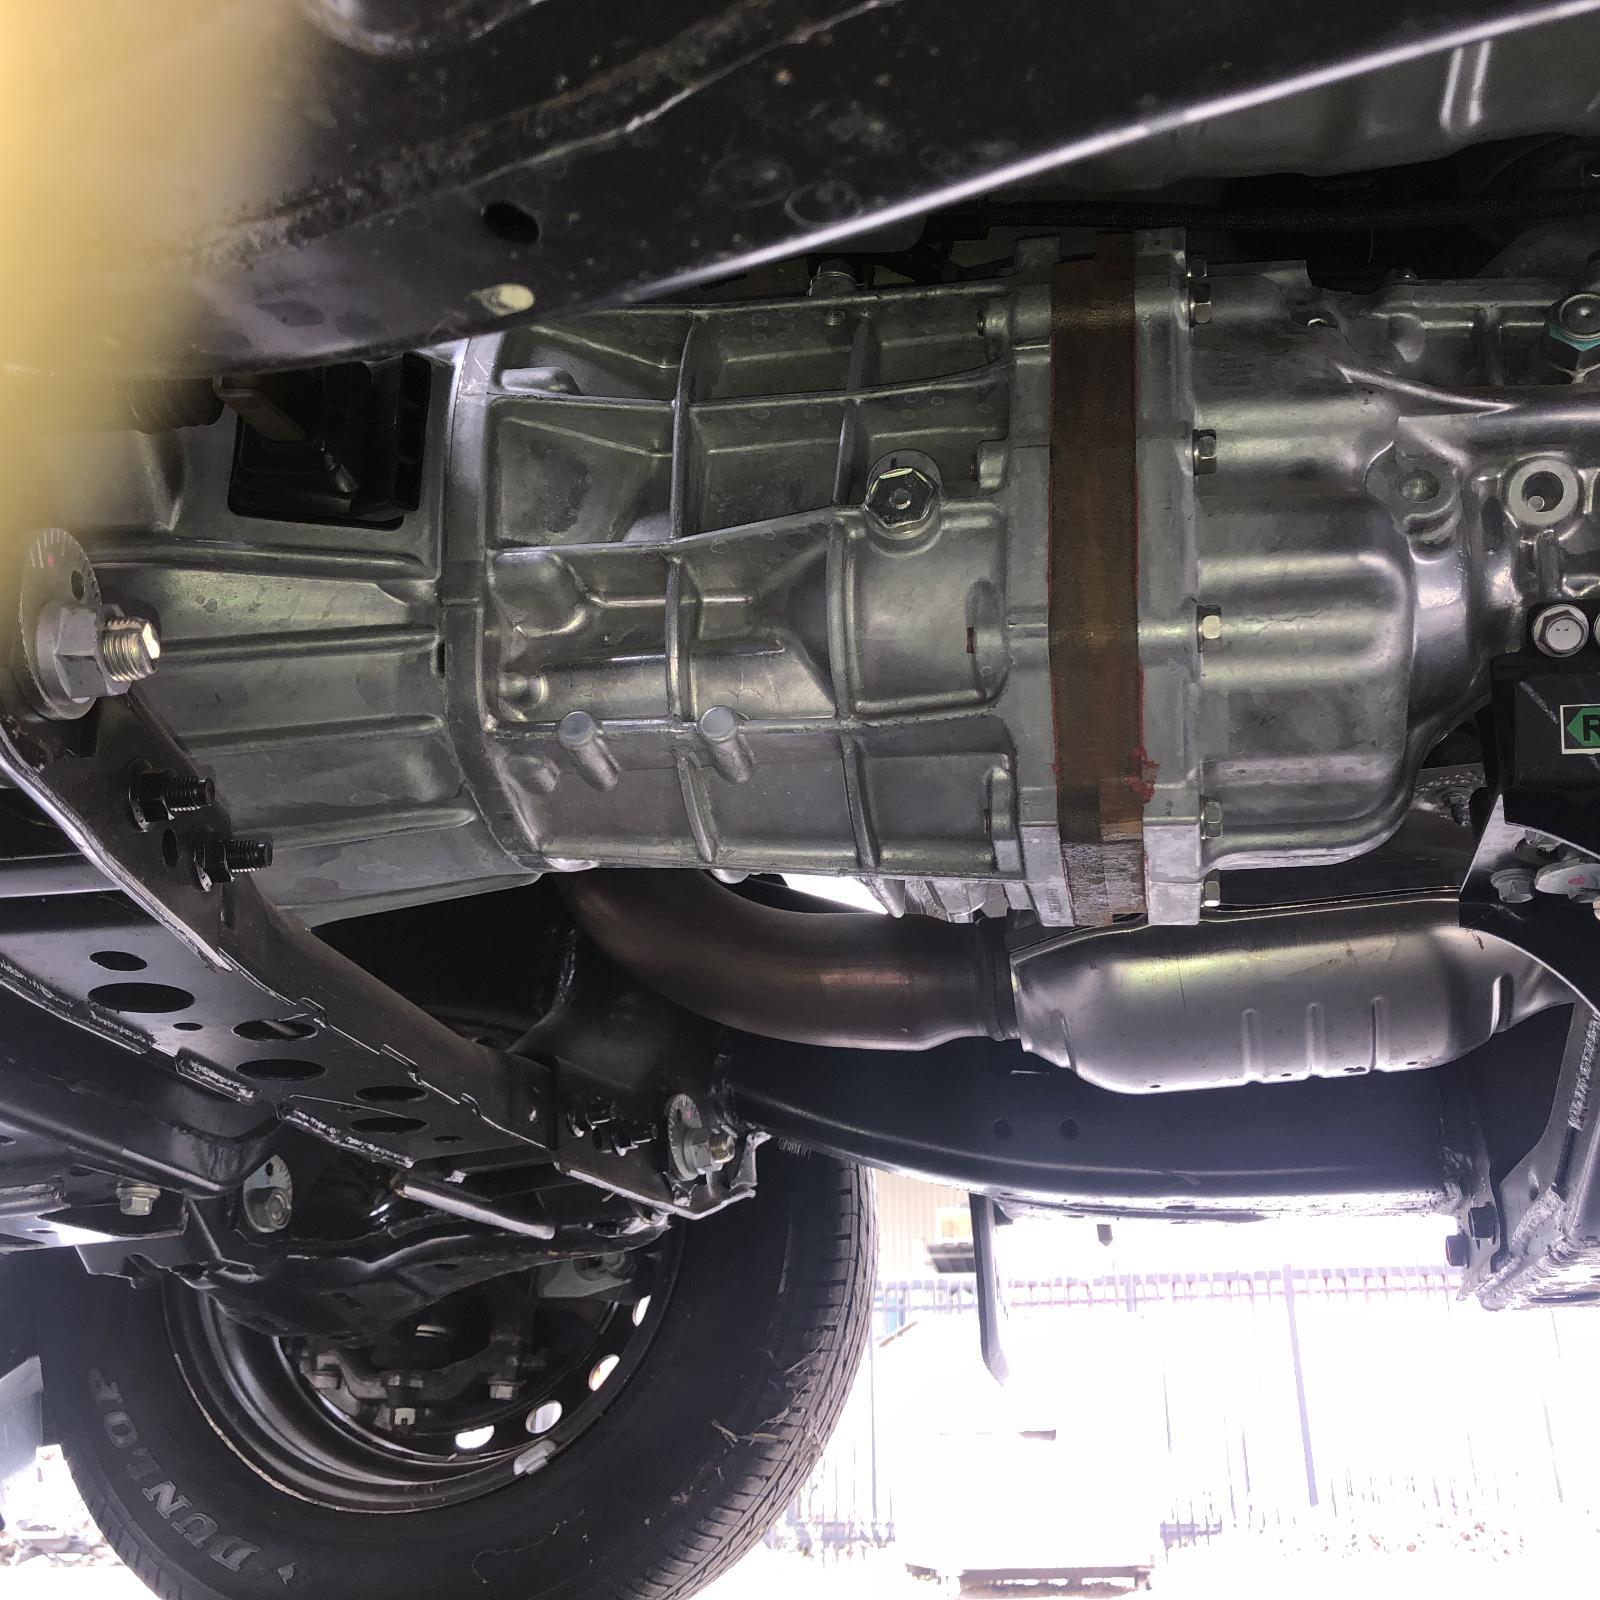 TOYOTA HILUX, Trans/Gearbox, MANUAL, 2WD, PETROL, 2.7, 2TR-FE, 09/15-